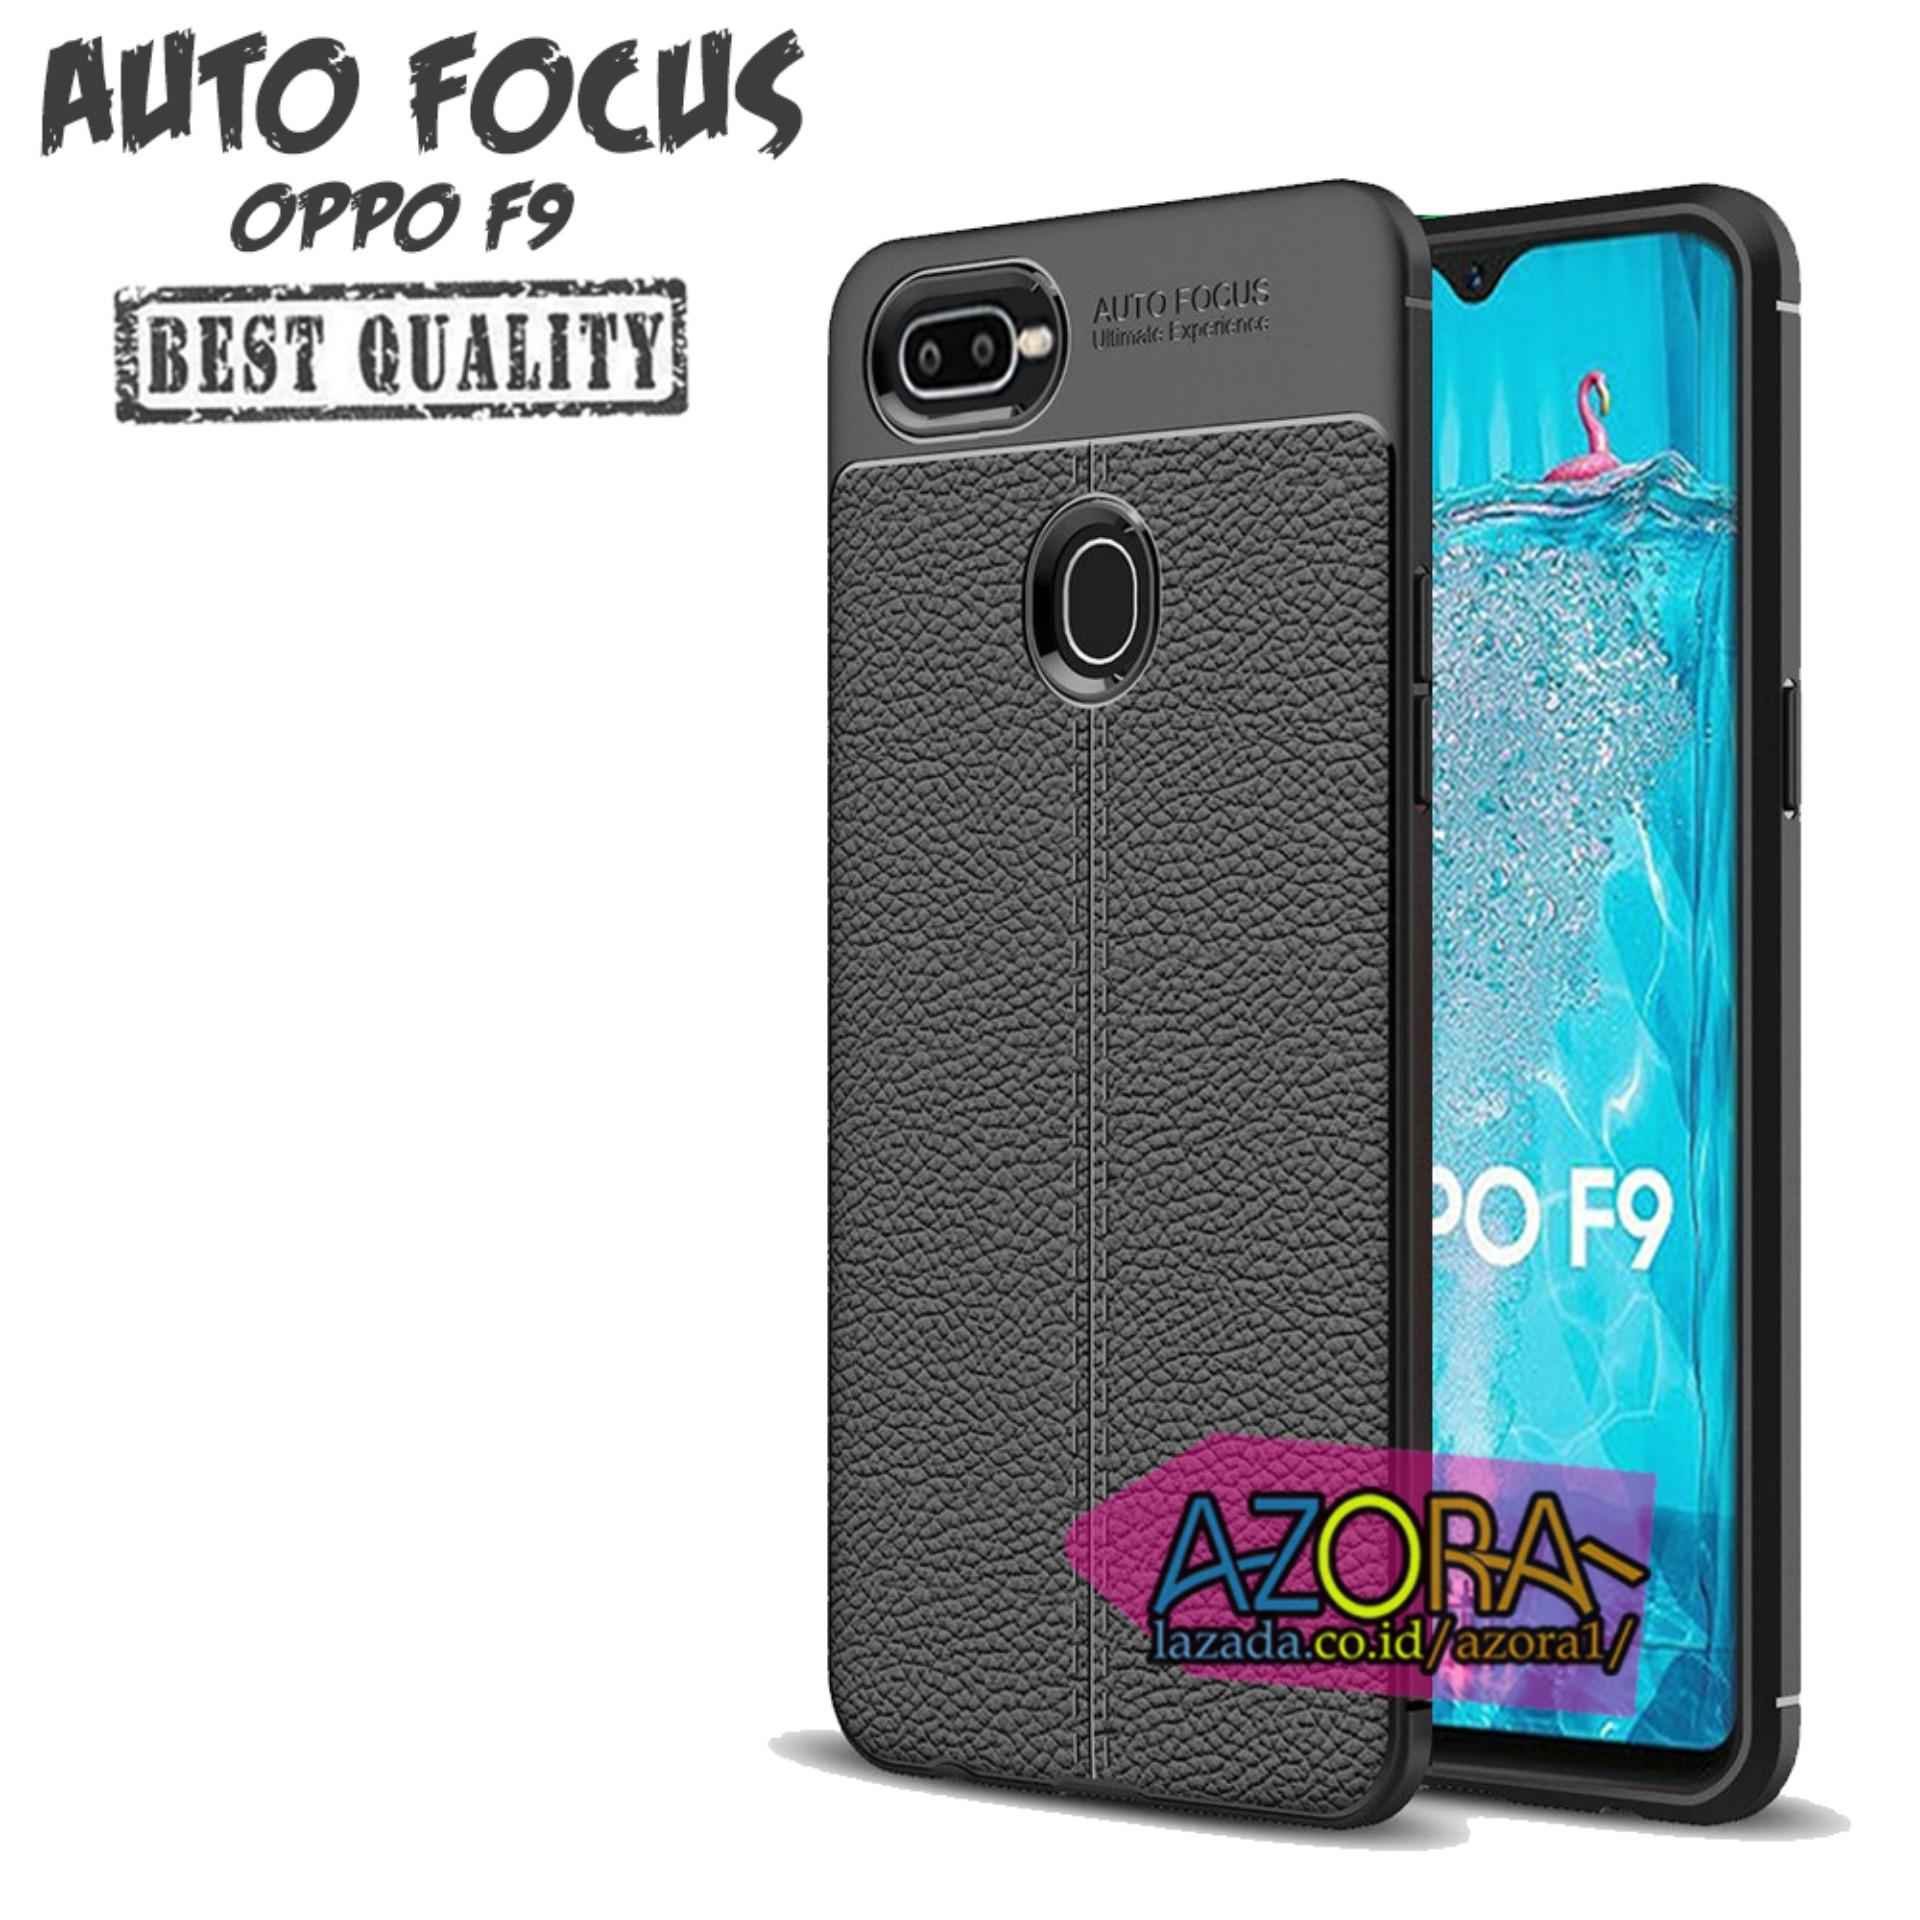 ... Softcase Casing For Vivo Y71. Source · Case Auto Focus Oppo F9 2018 Leather Experience Slim Ultimate